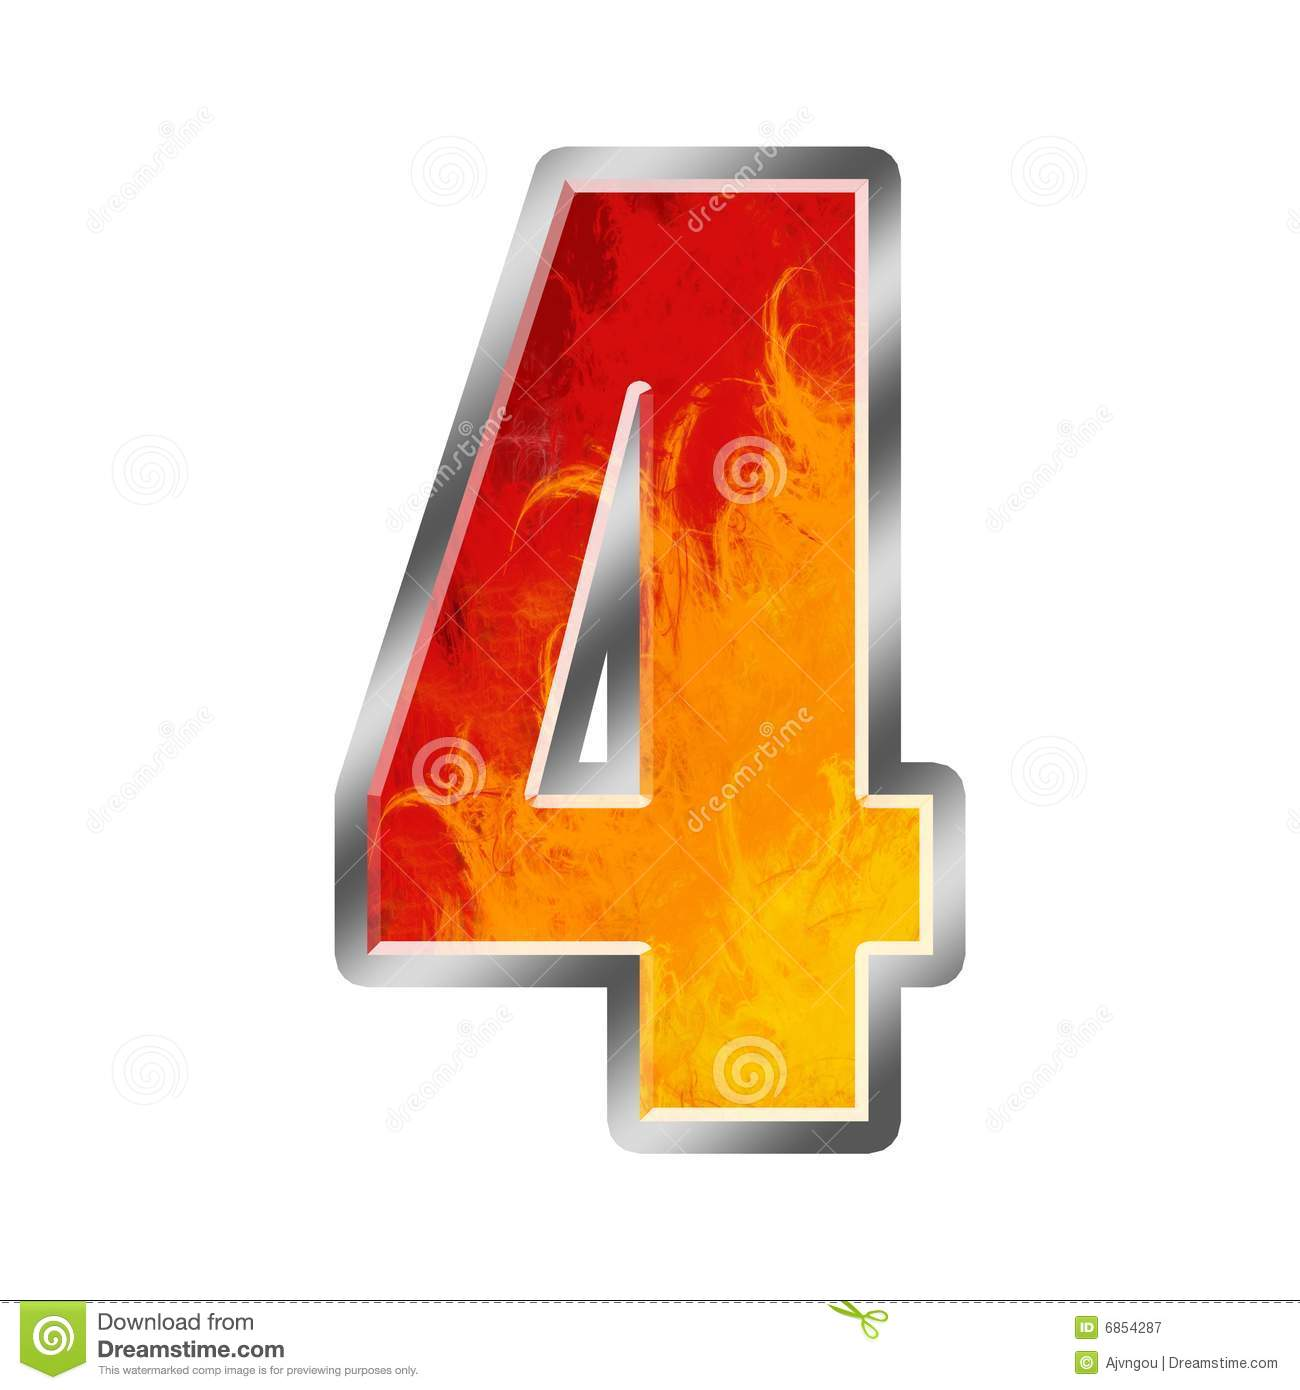 Flaming Letters Images Stock Photos amp Vectors  Shutterstock